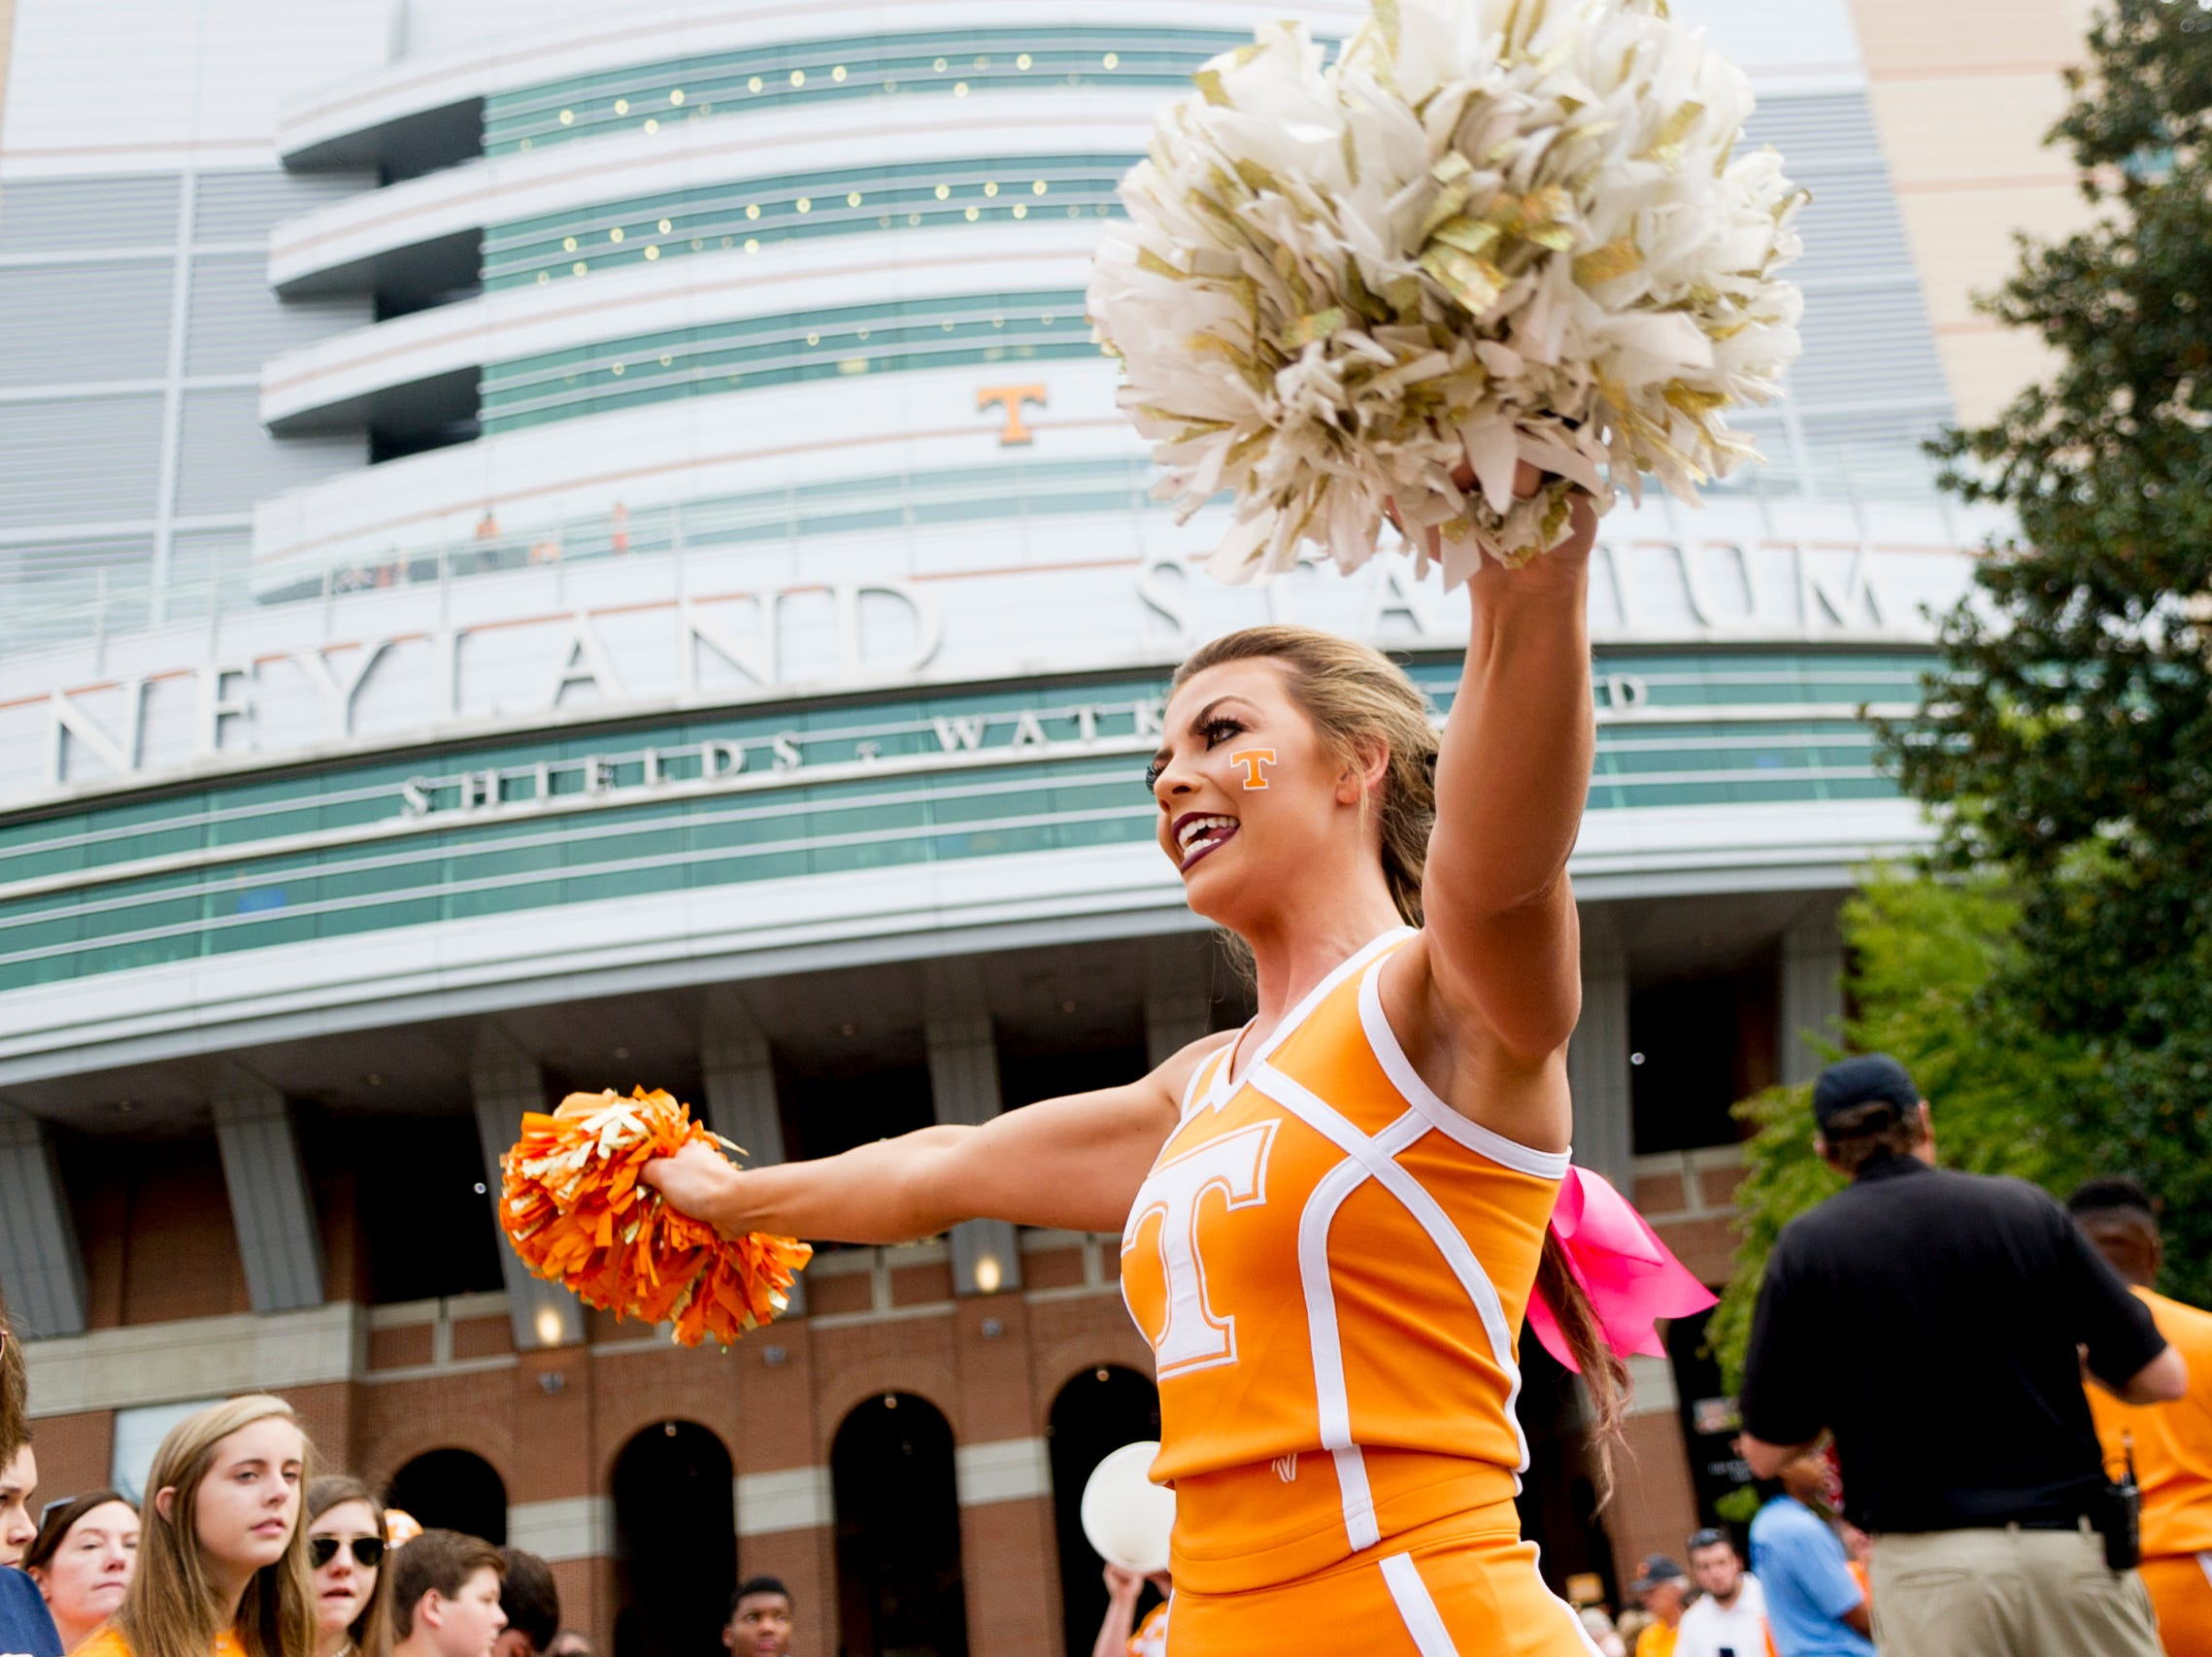 A Tennessee cheerleaders pumps up fans during the Vol Walk during the Tennessee Volunteers vs South Carolina Gamecocks game at Neyland Stadium in Knoxville, Tennessee on Saturday, October 14, 2017.